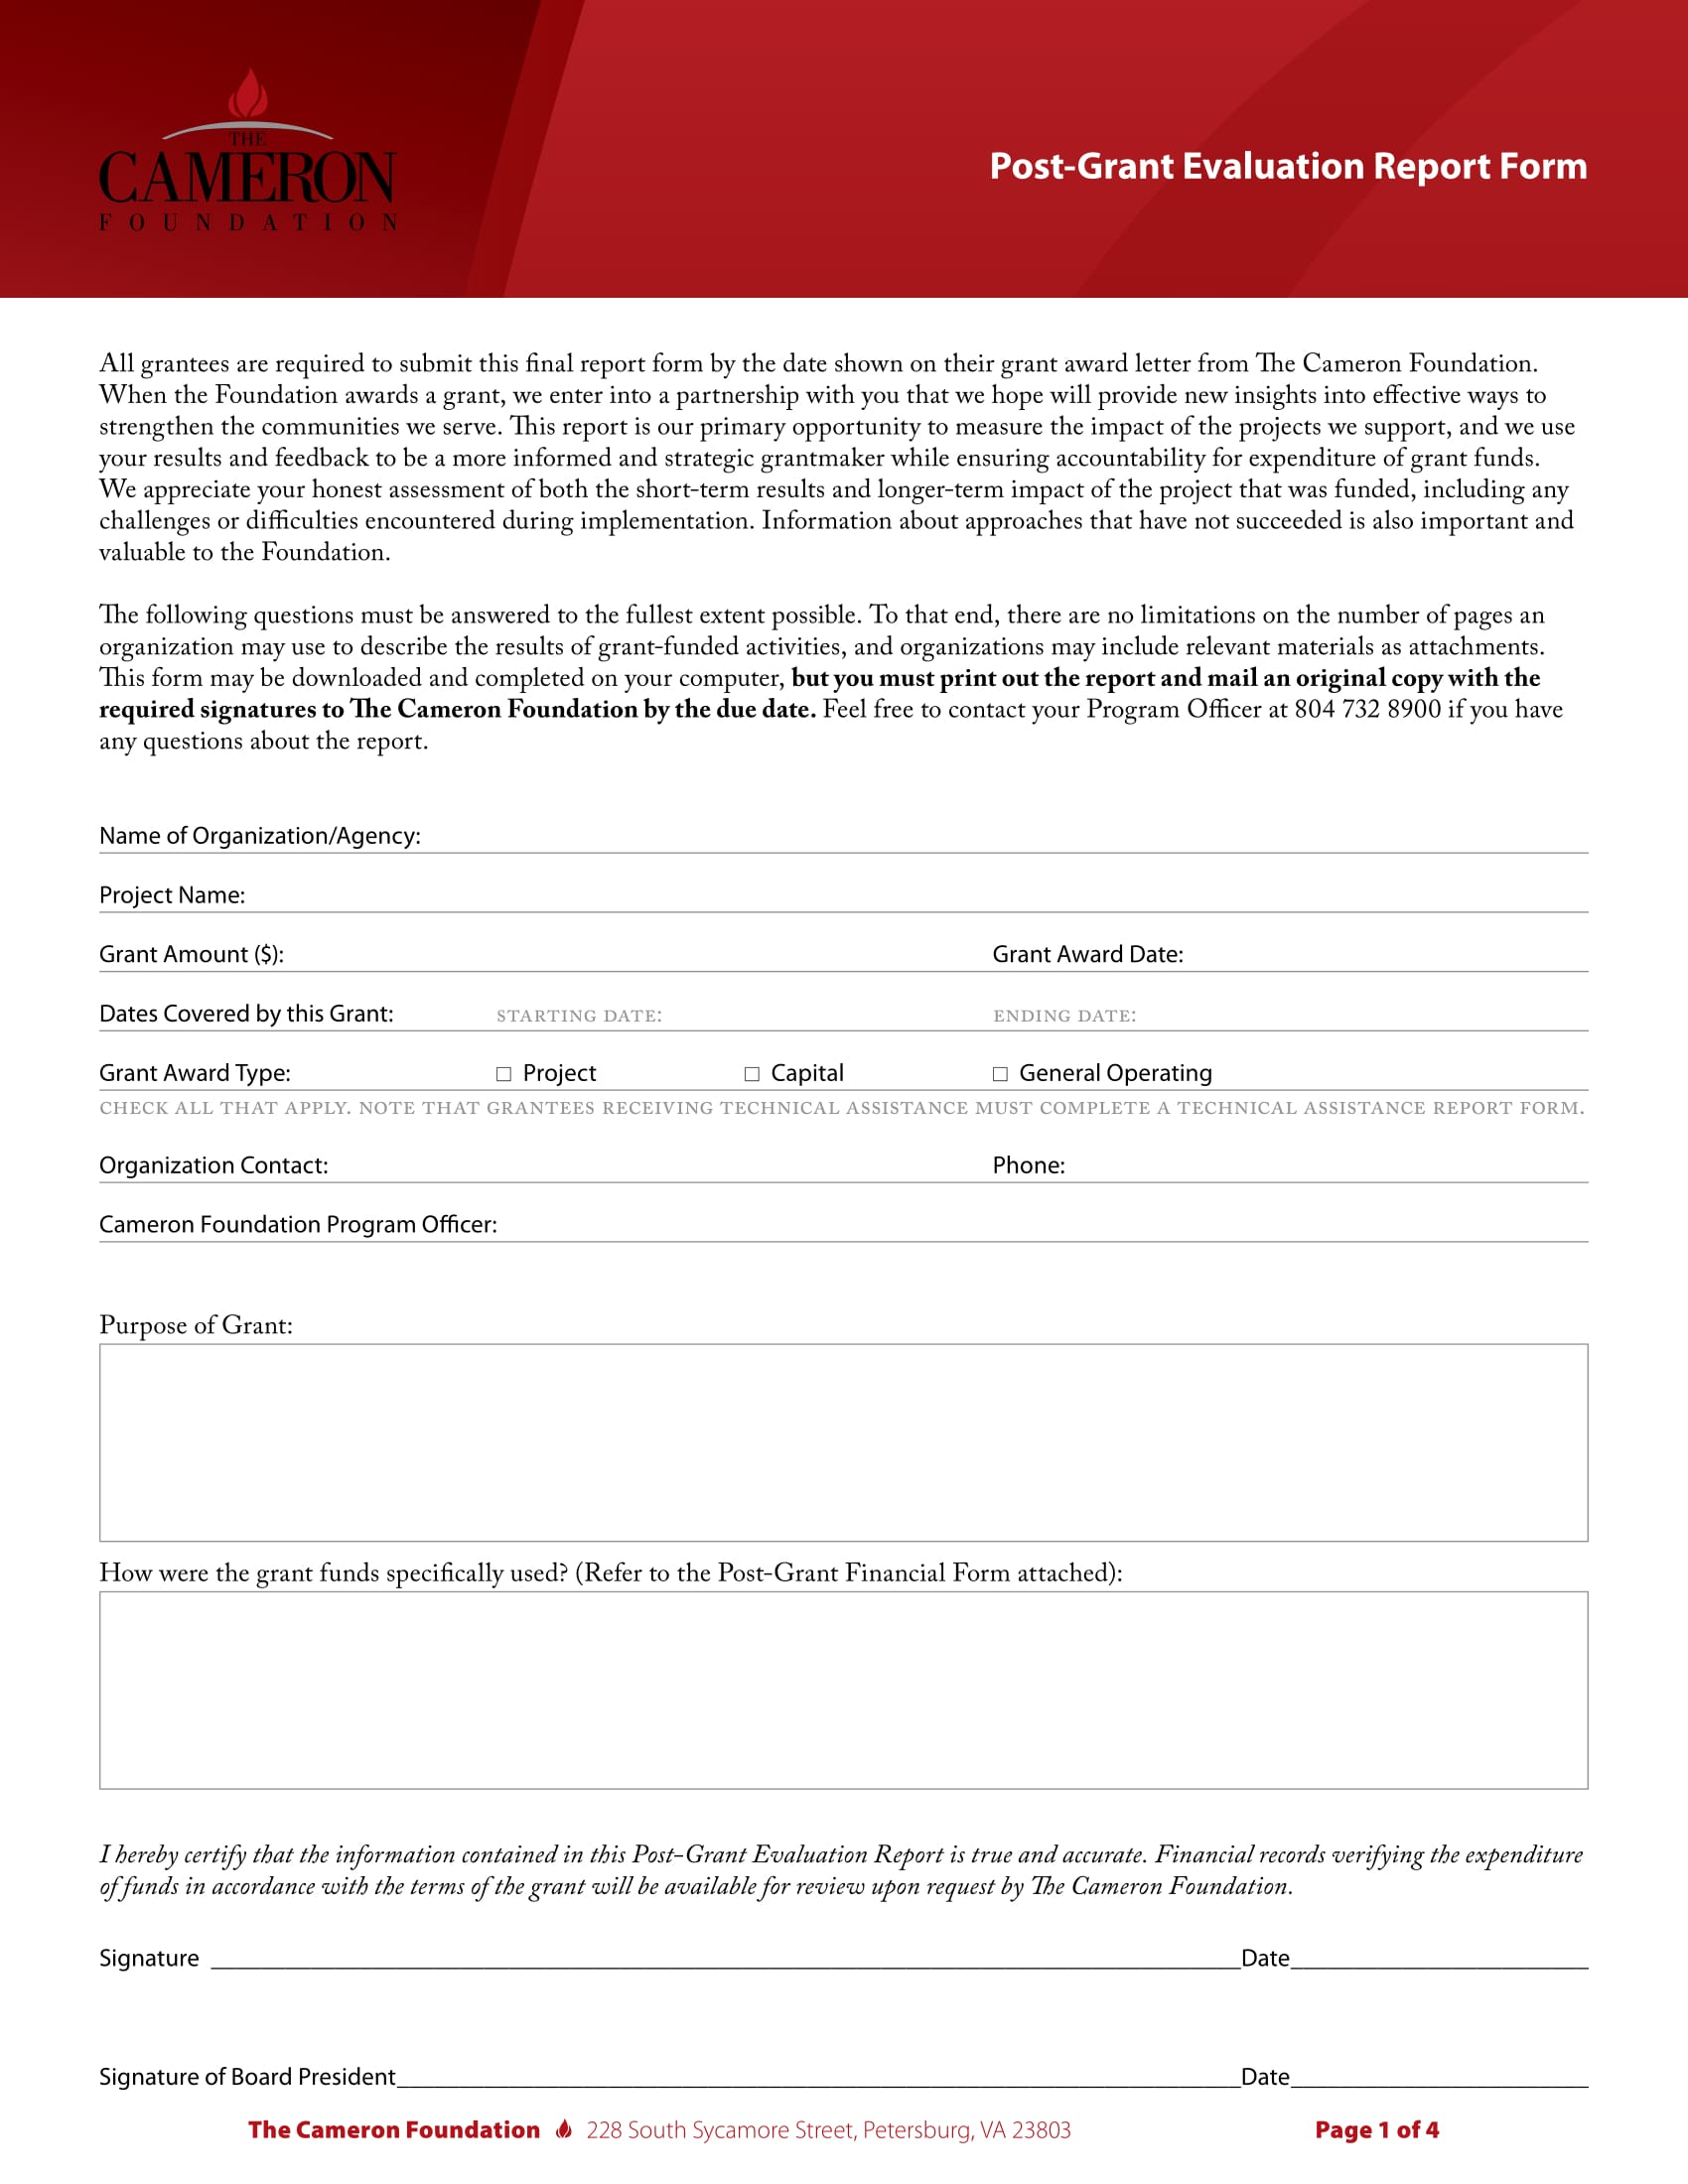 post grant evaluation report form 1